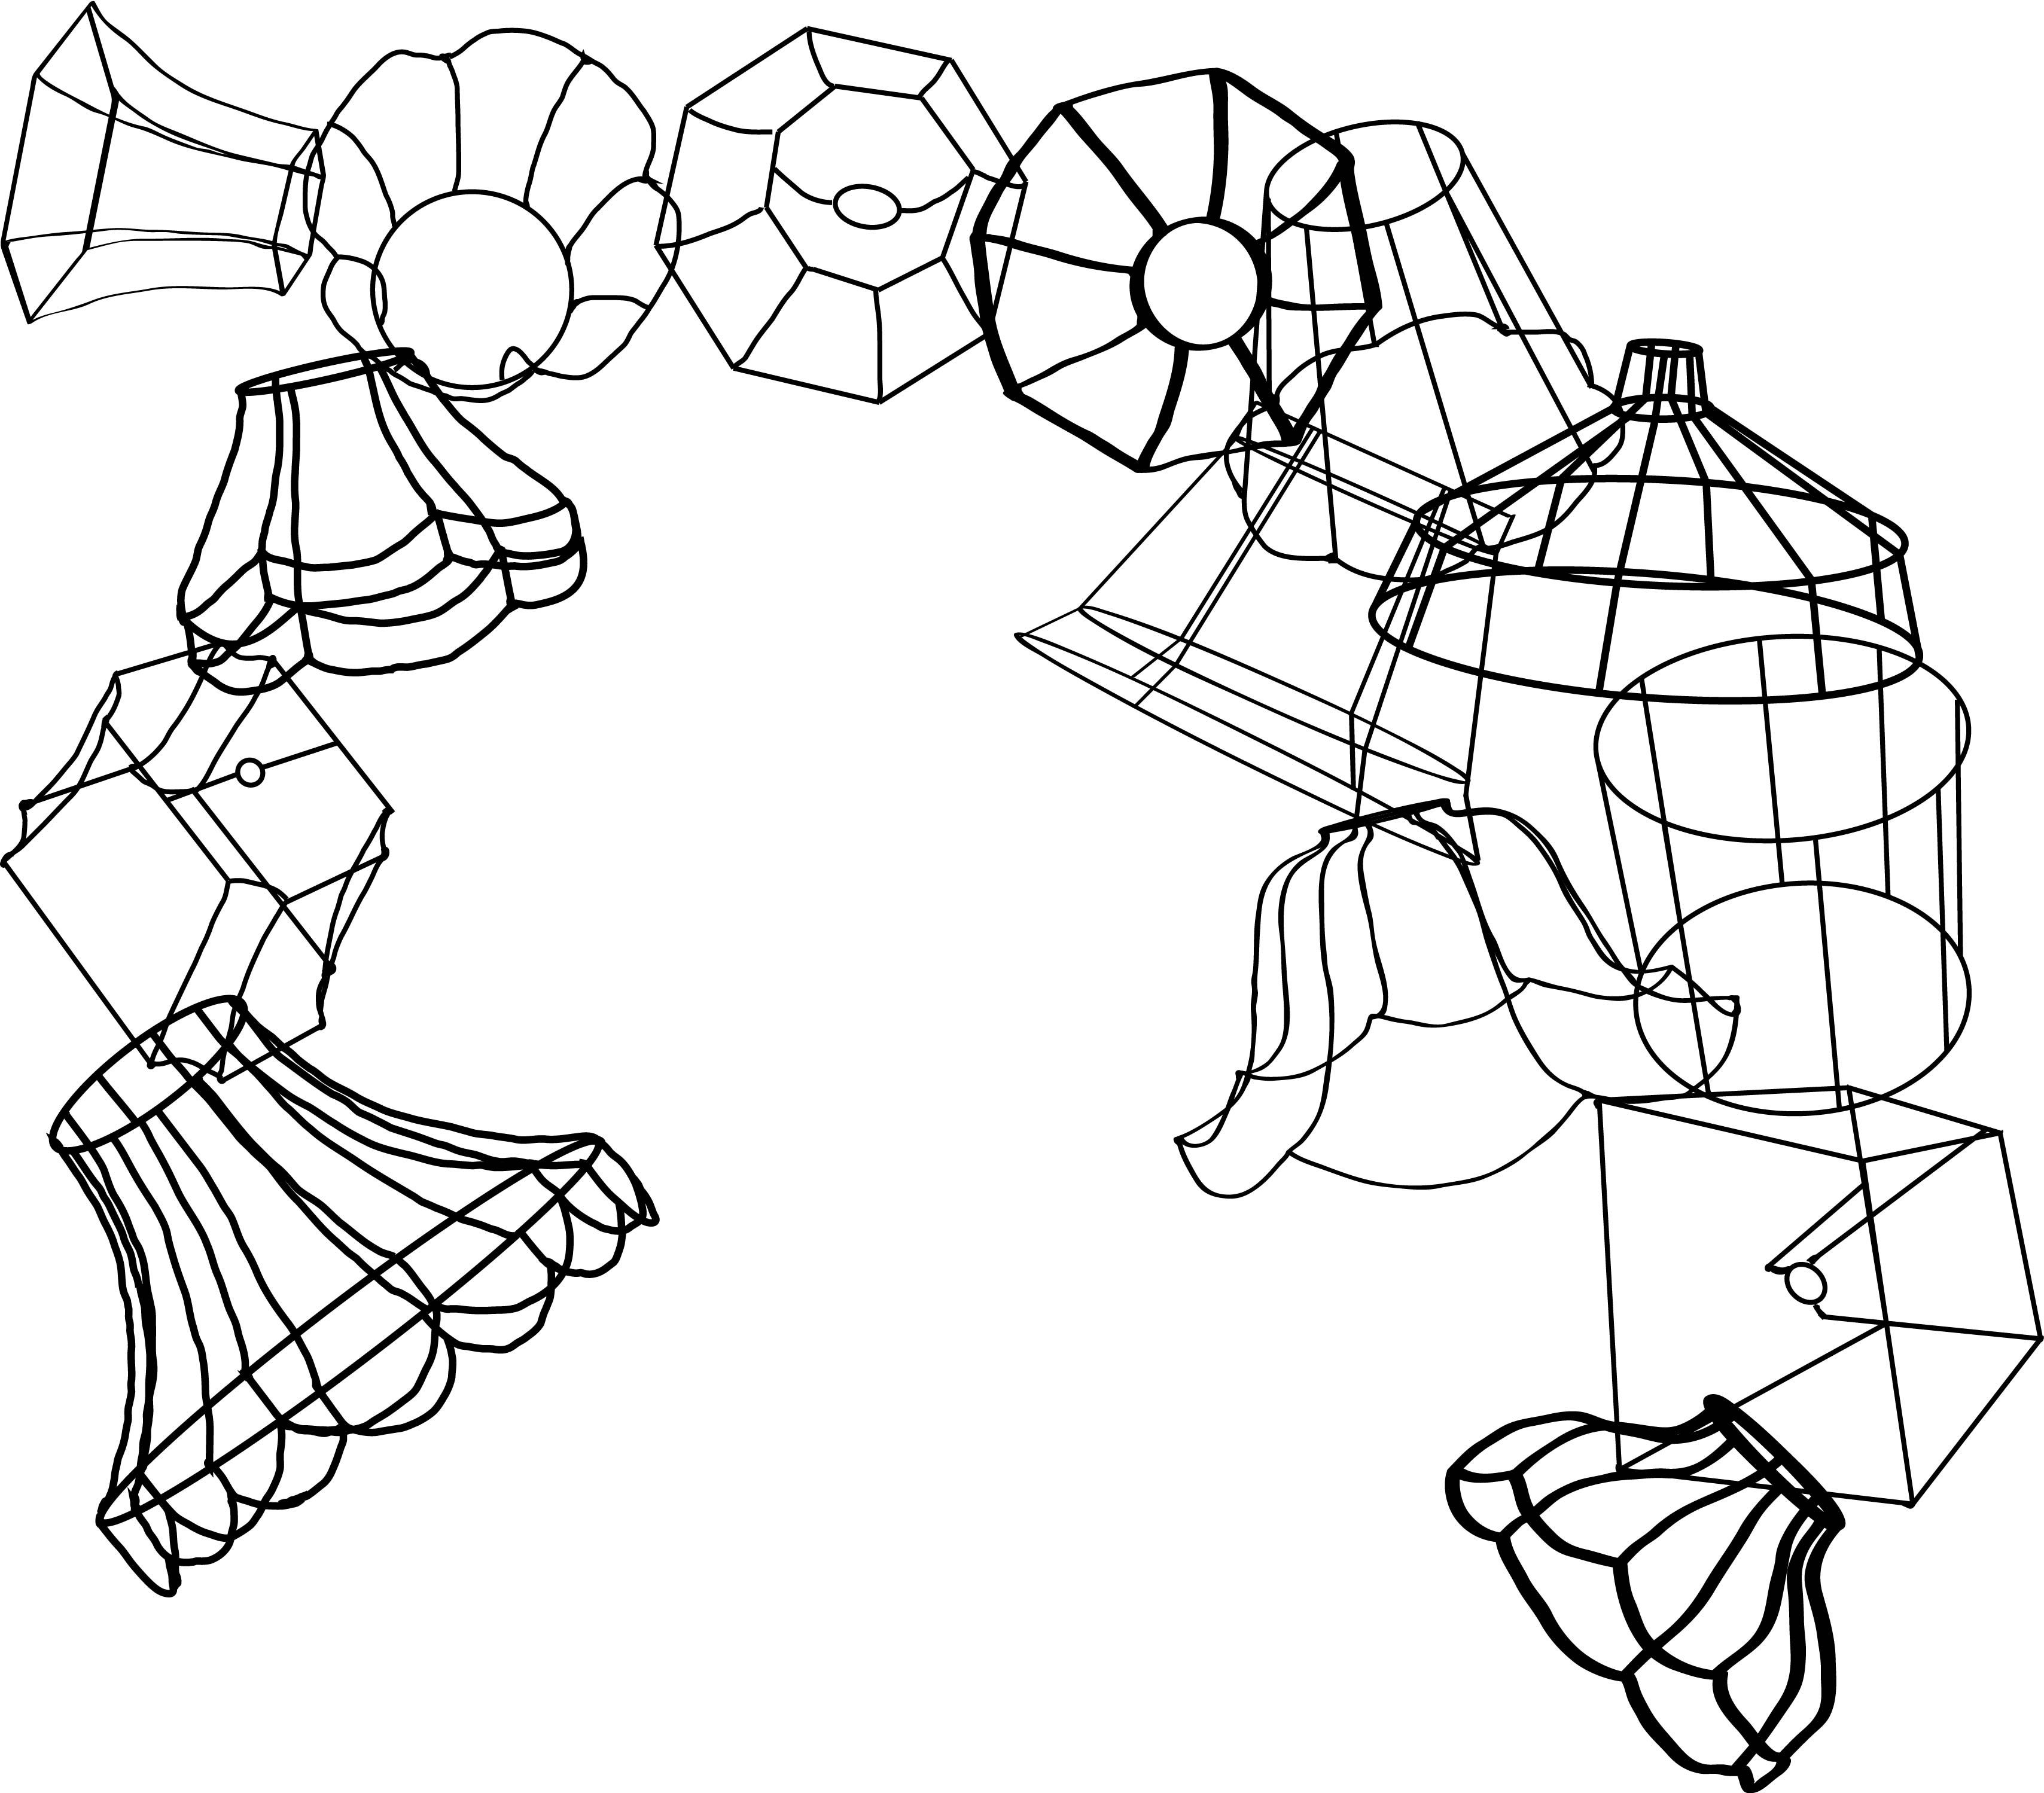 wire lamp shade illustration for a branding brief